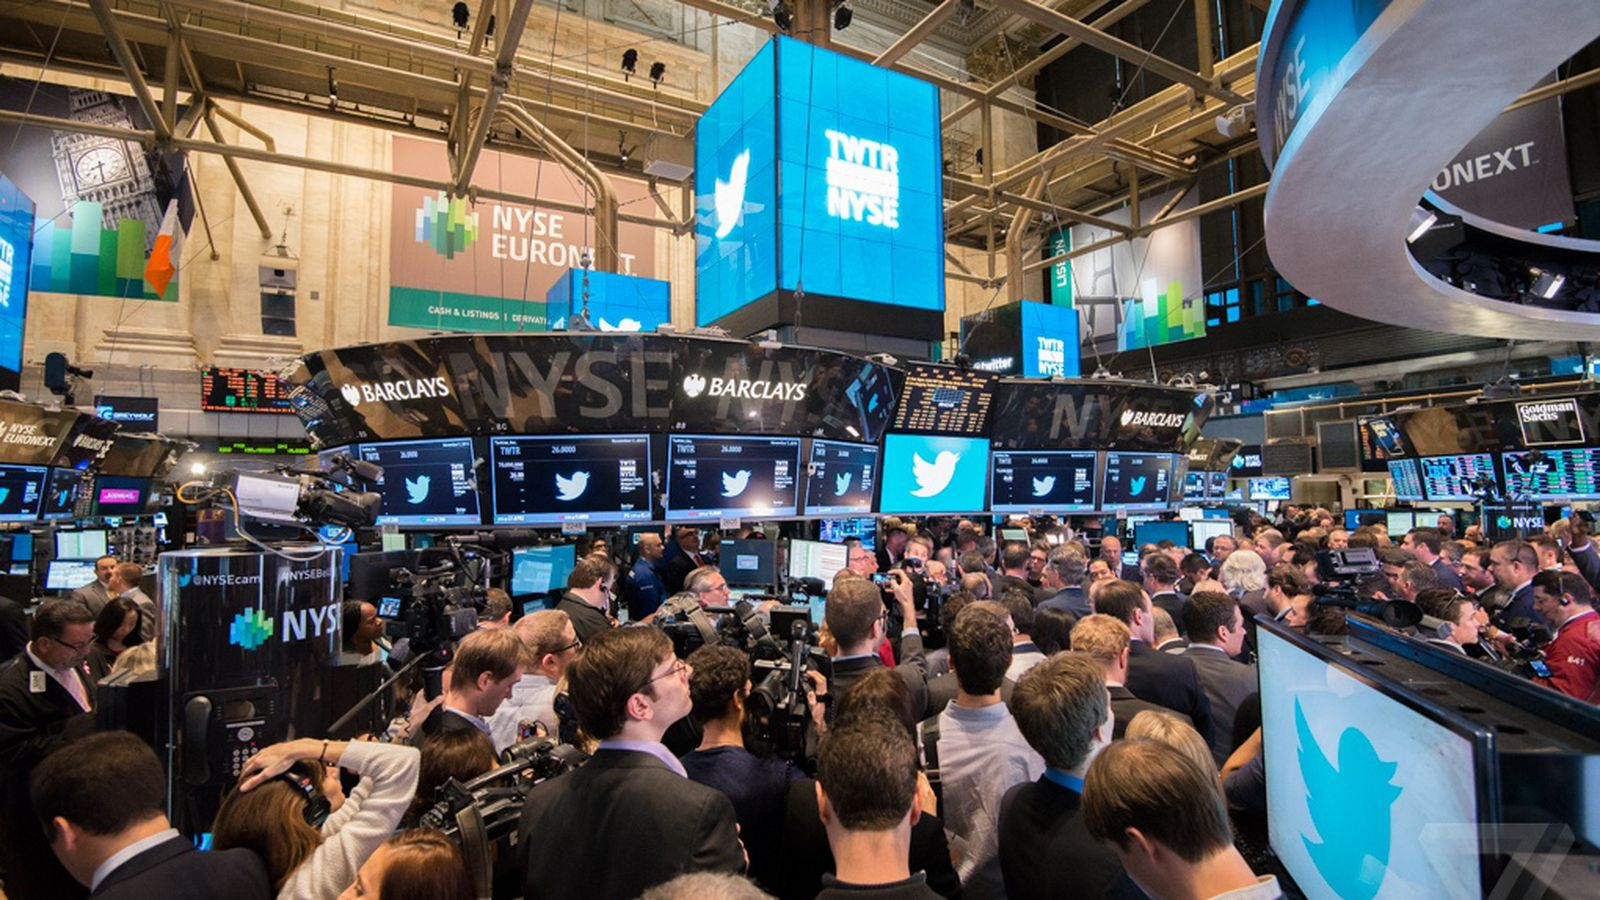 Twitter's Stock Closes At $4490 A Share, Up 73 Percent On Its First Day   The Verge